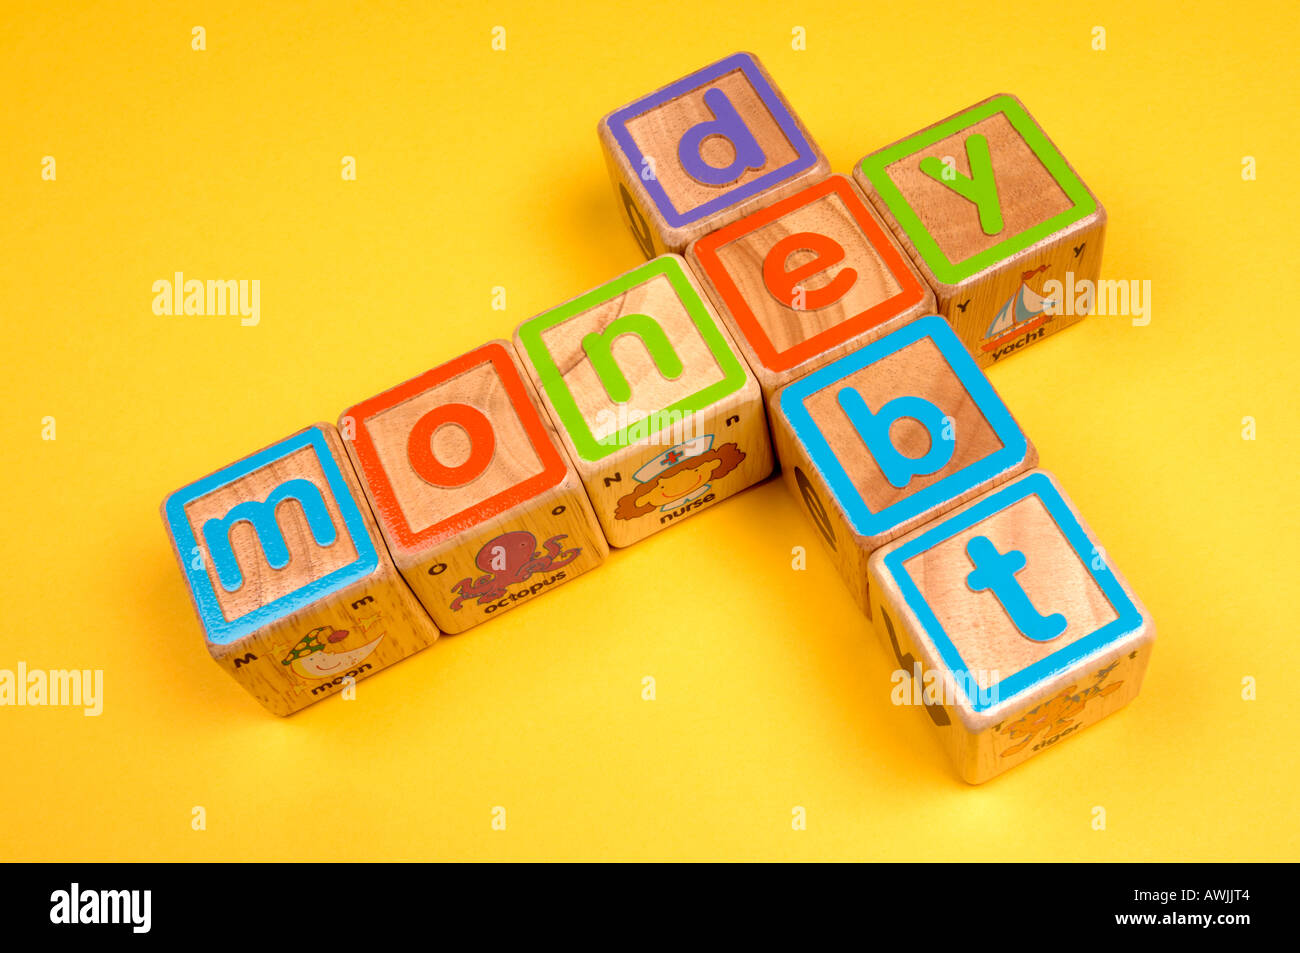 Wooden blocks depicting money linked to debt - Stock Image